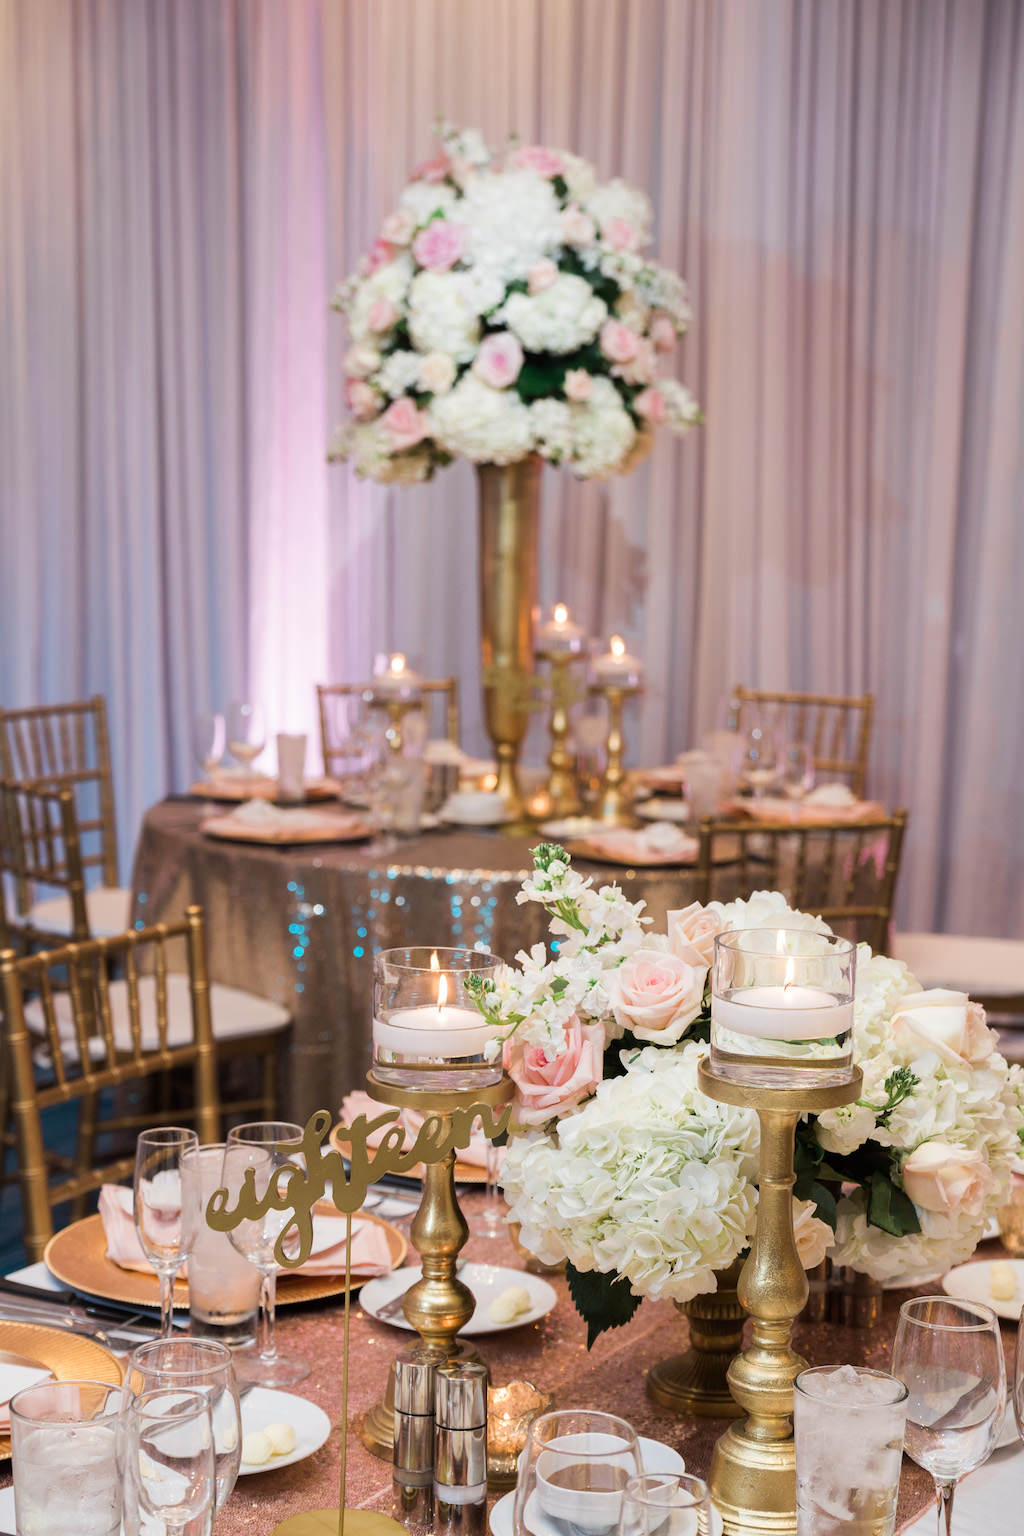 Whimsical Gold and Pink Hotel Ballroom Wedding Reception with Tall White Hydrangea Pink Rose and Greenery Centerpieces in Gold Vases, Gold Sequin Table Cloths, and Gold Chiavari Chairs and Stylish Gold Candlestick Holders and Table Numbers   Tampa Bay Wedding Draping, Linen, and Furniture Rental Gabro Event Services   Venue Hilton Clearwater Beach